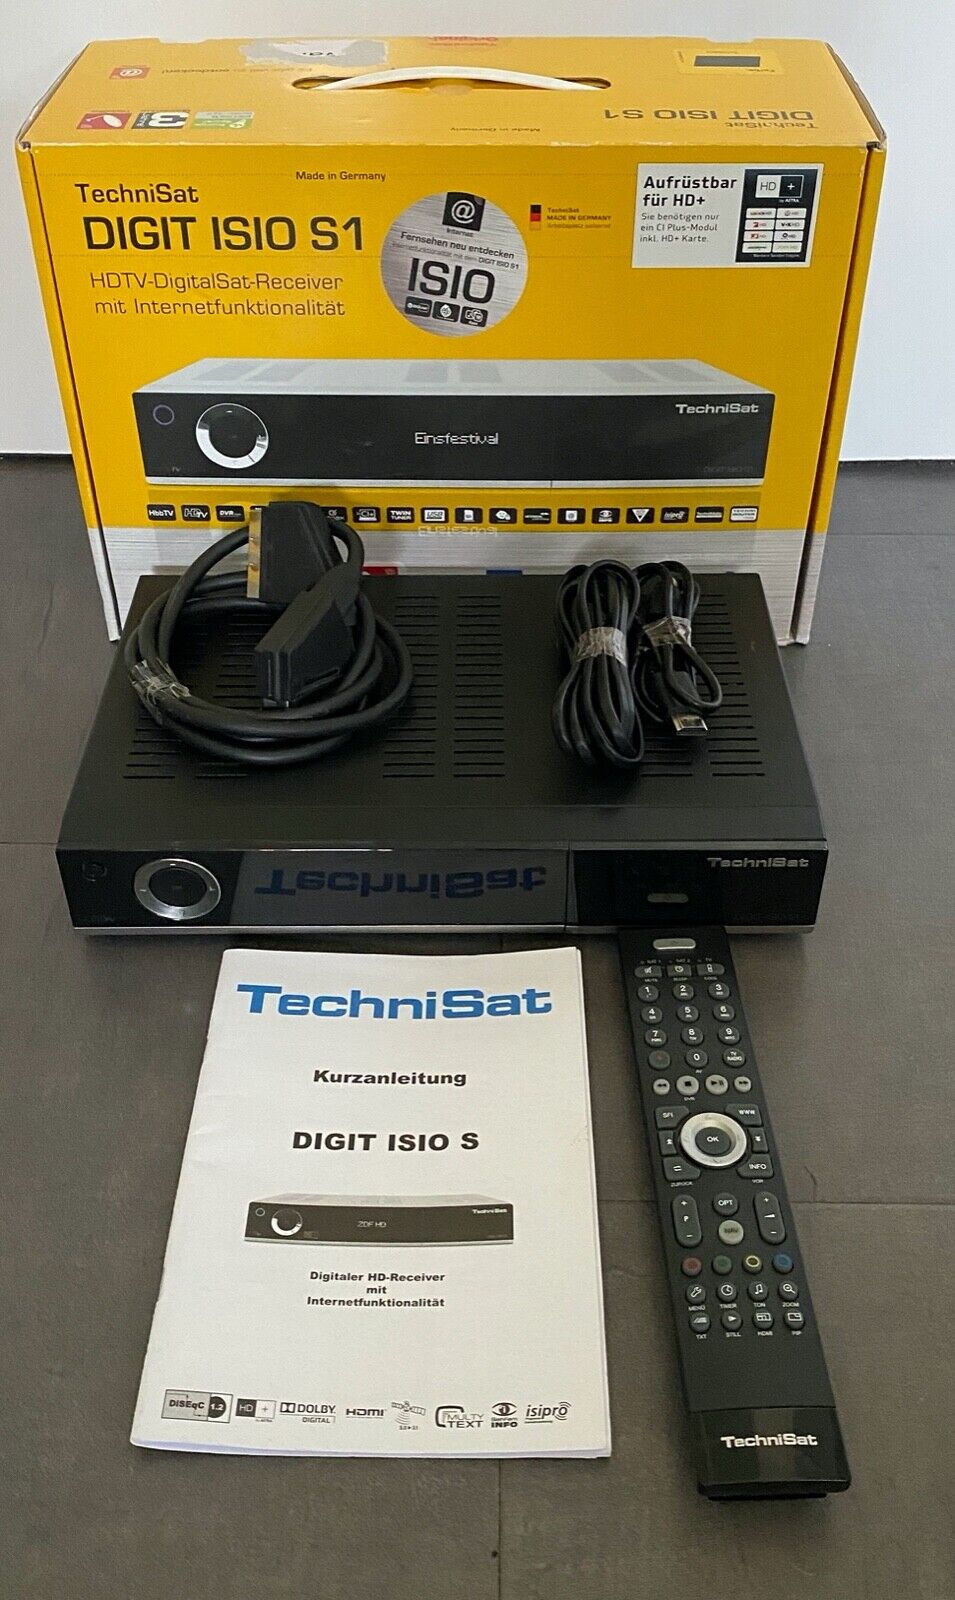 TechniSat Digit ISIO S1 HDTV-Digitaler Sat-Receiver Twin-Tuner HD+ Receiver